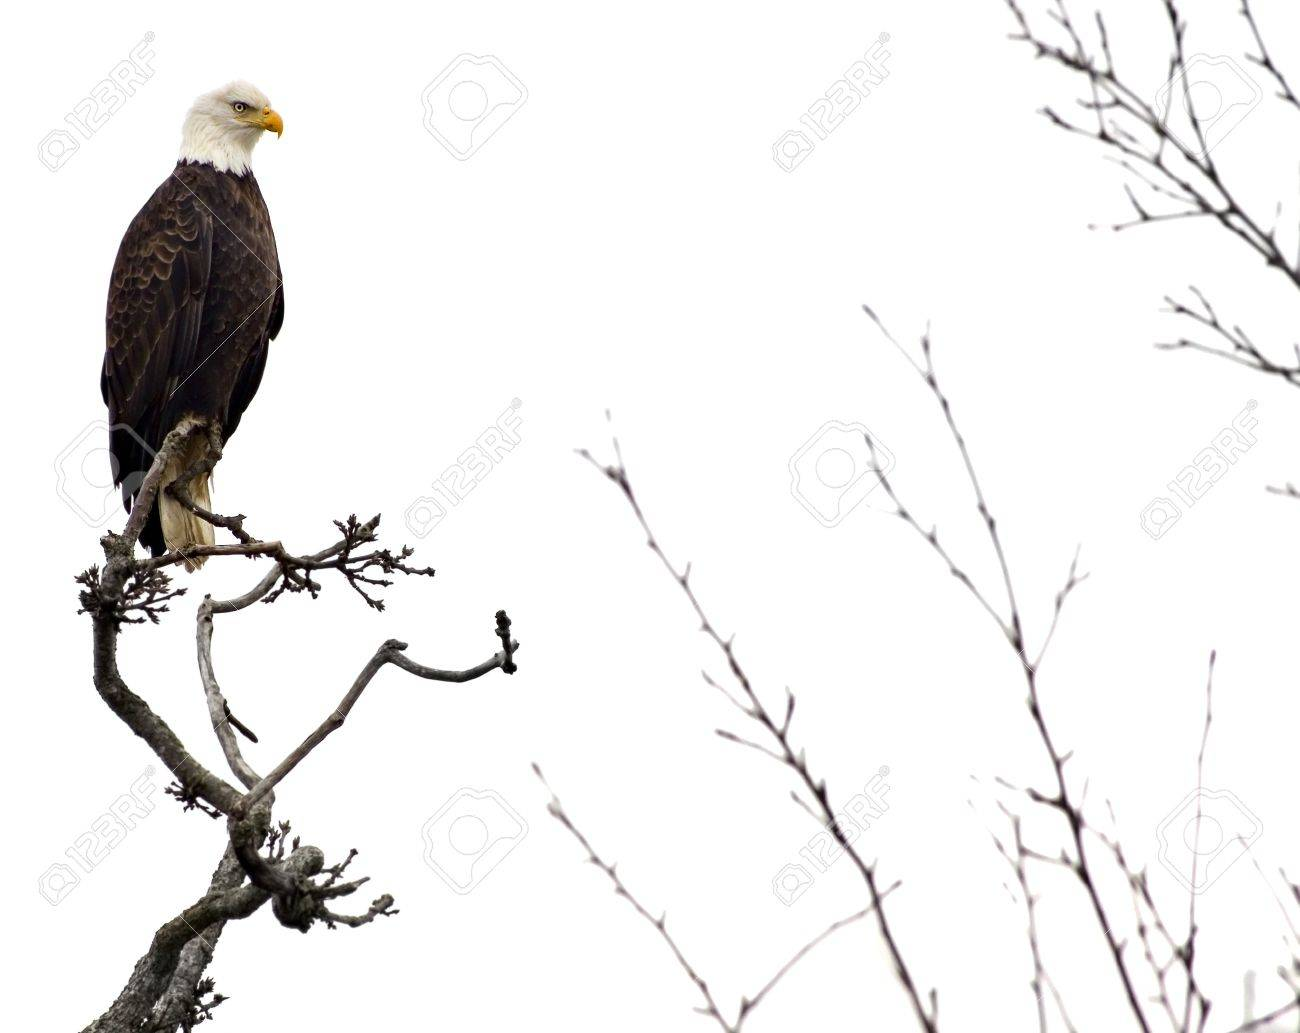 Bald eagle on a tree branch, isolated on white Stock Photo - 17467022